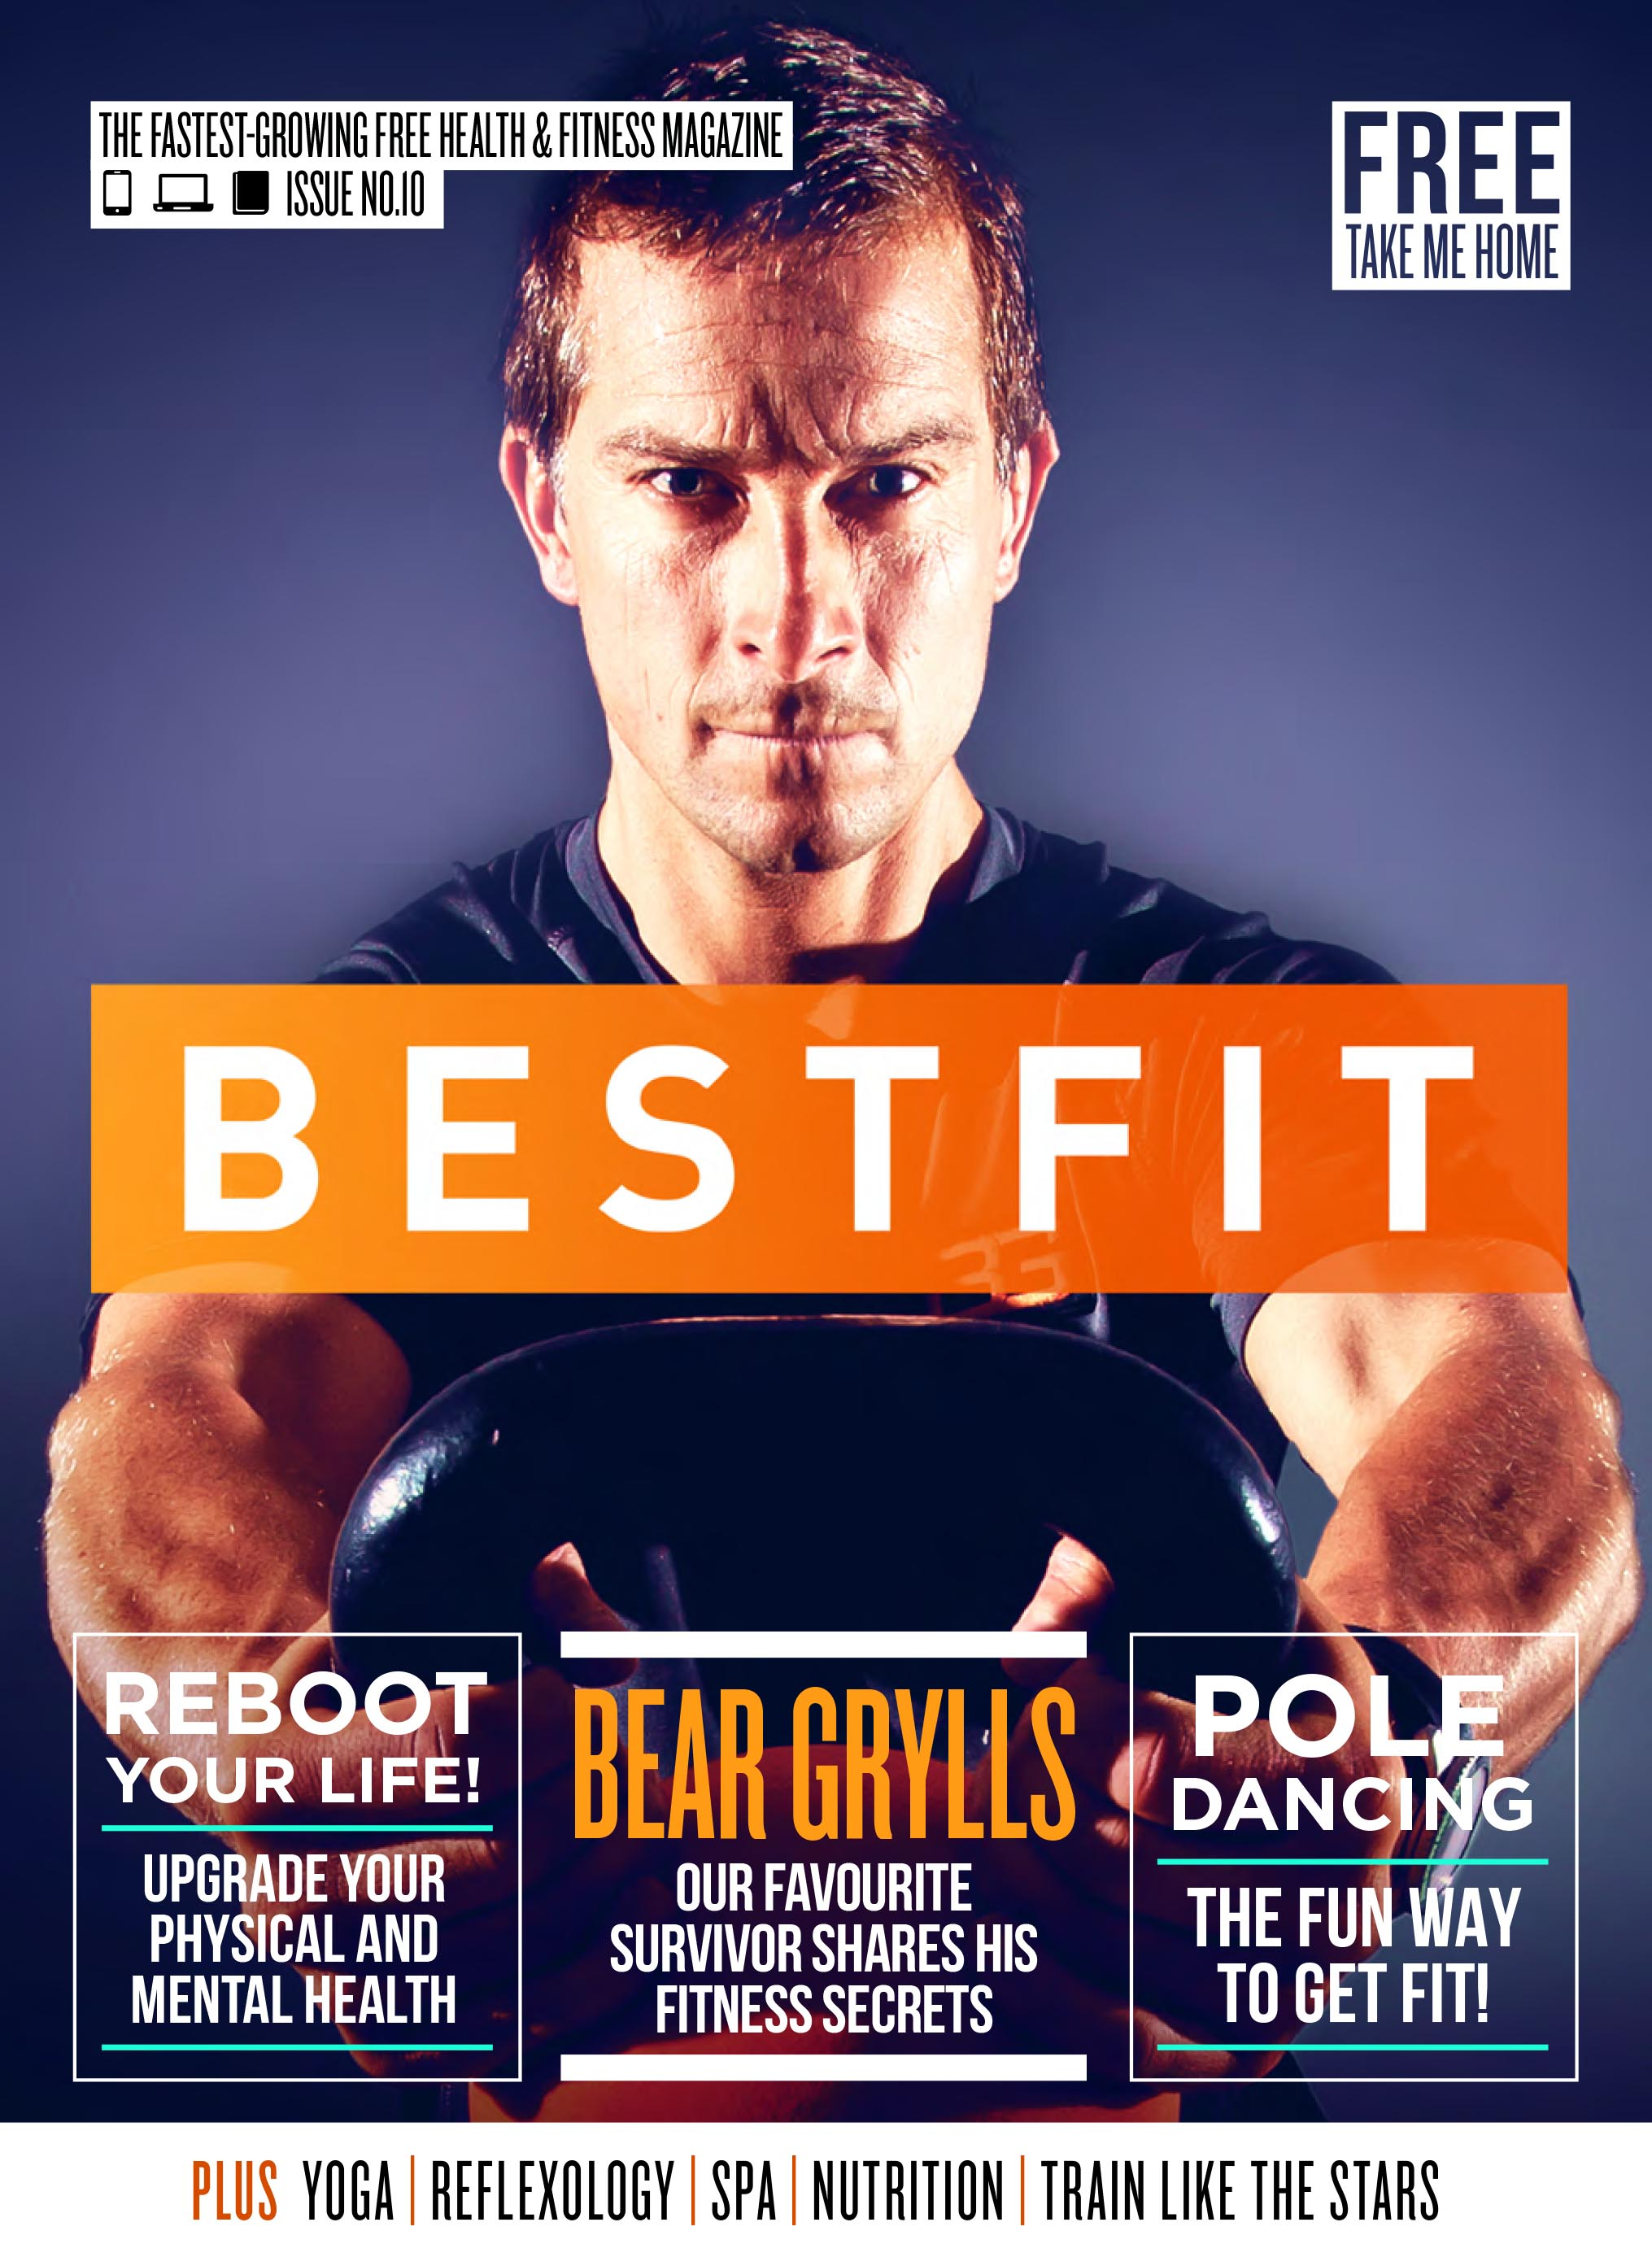 Bestfit Issue 10 cover photo, featuring Bear Grylls.